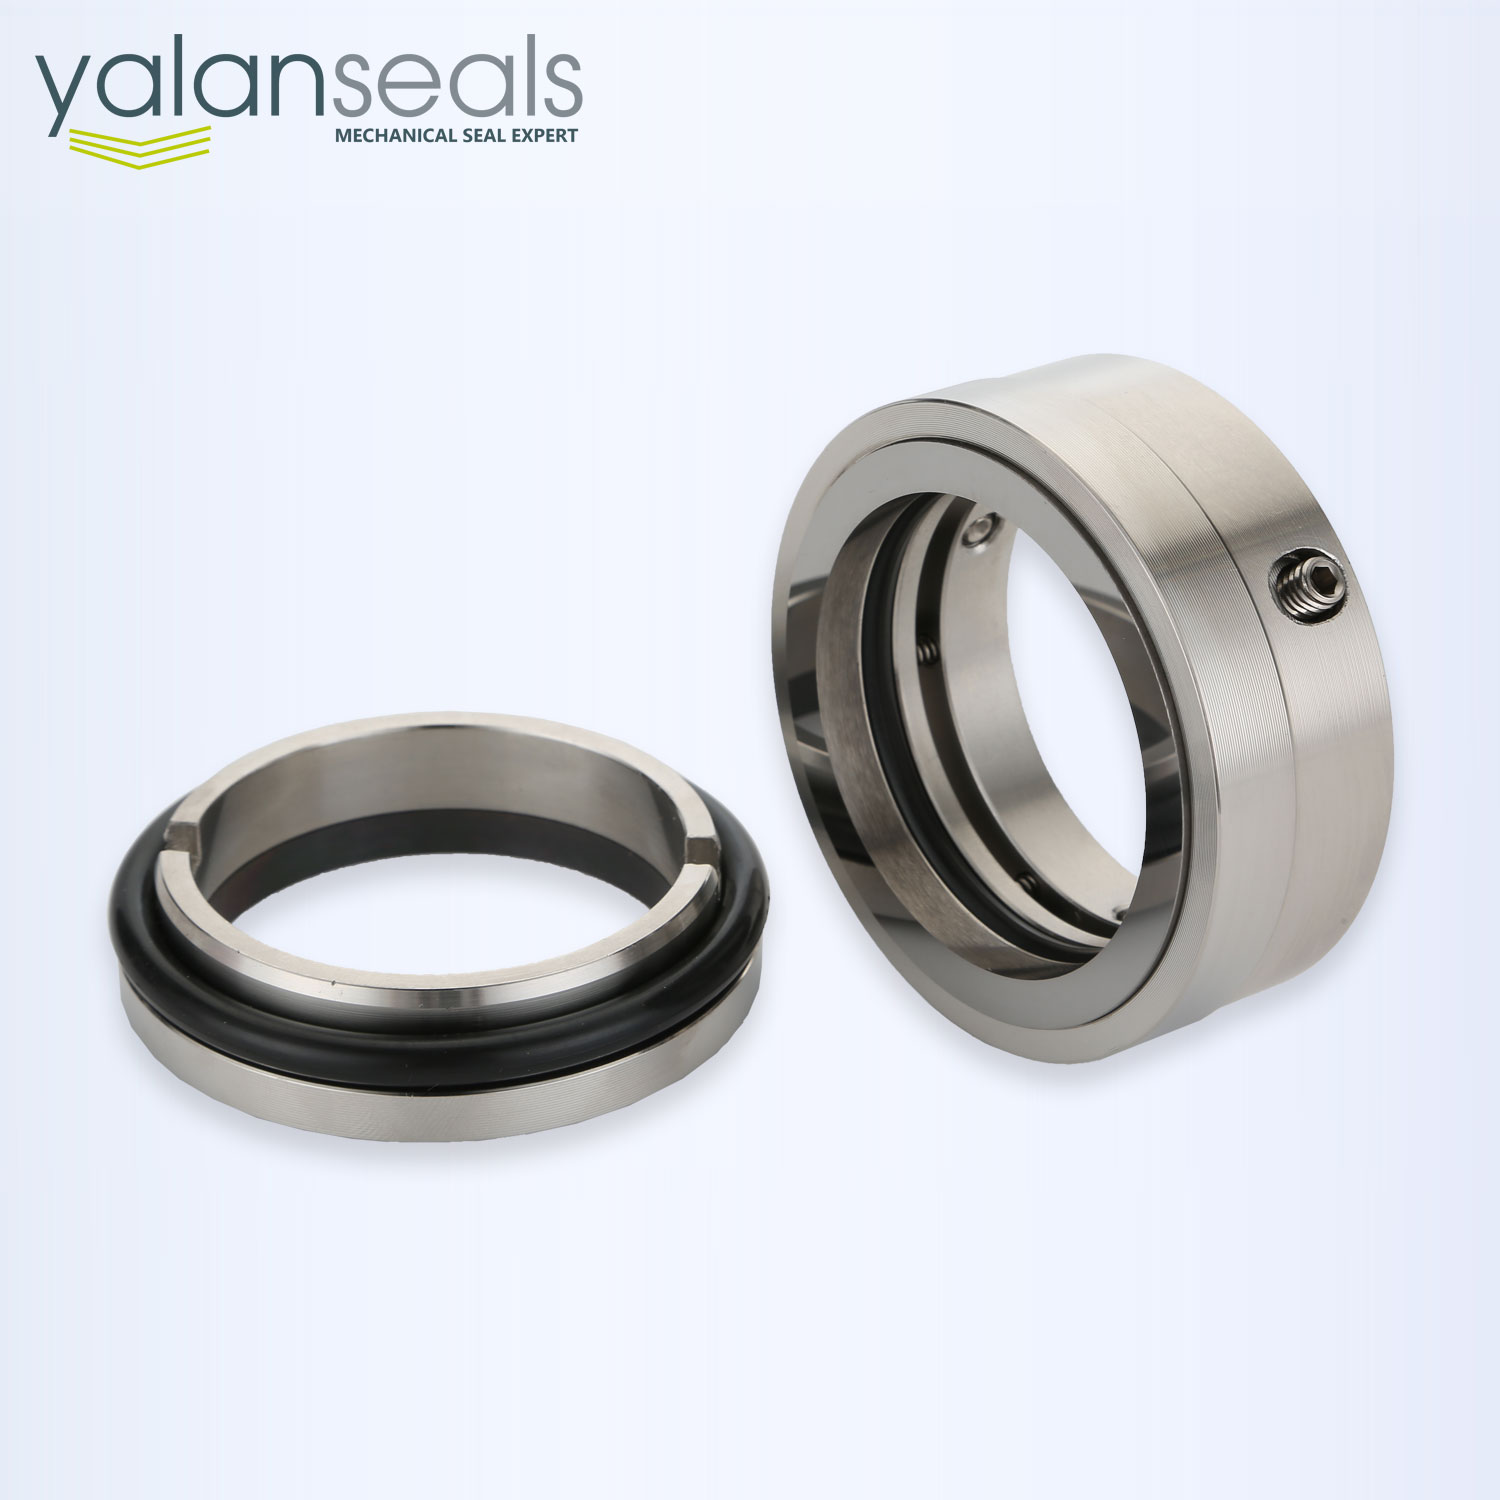 M524-2 Mechanical Seal for Immersible Pumps